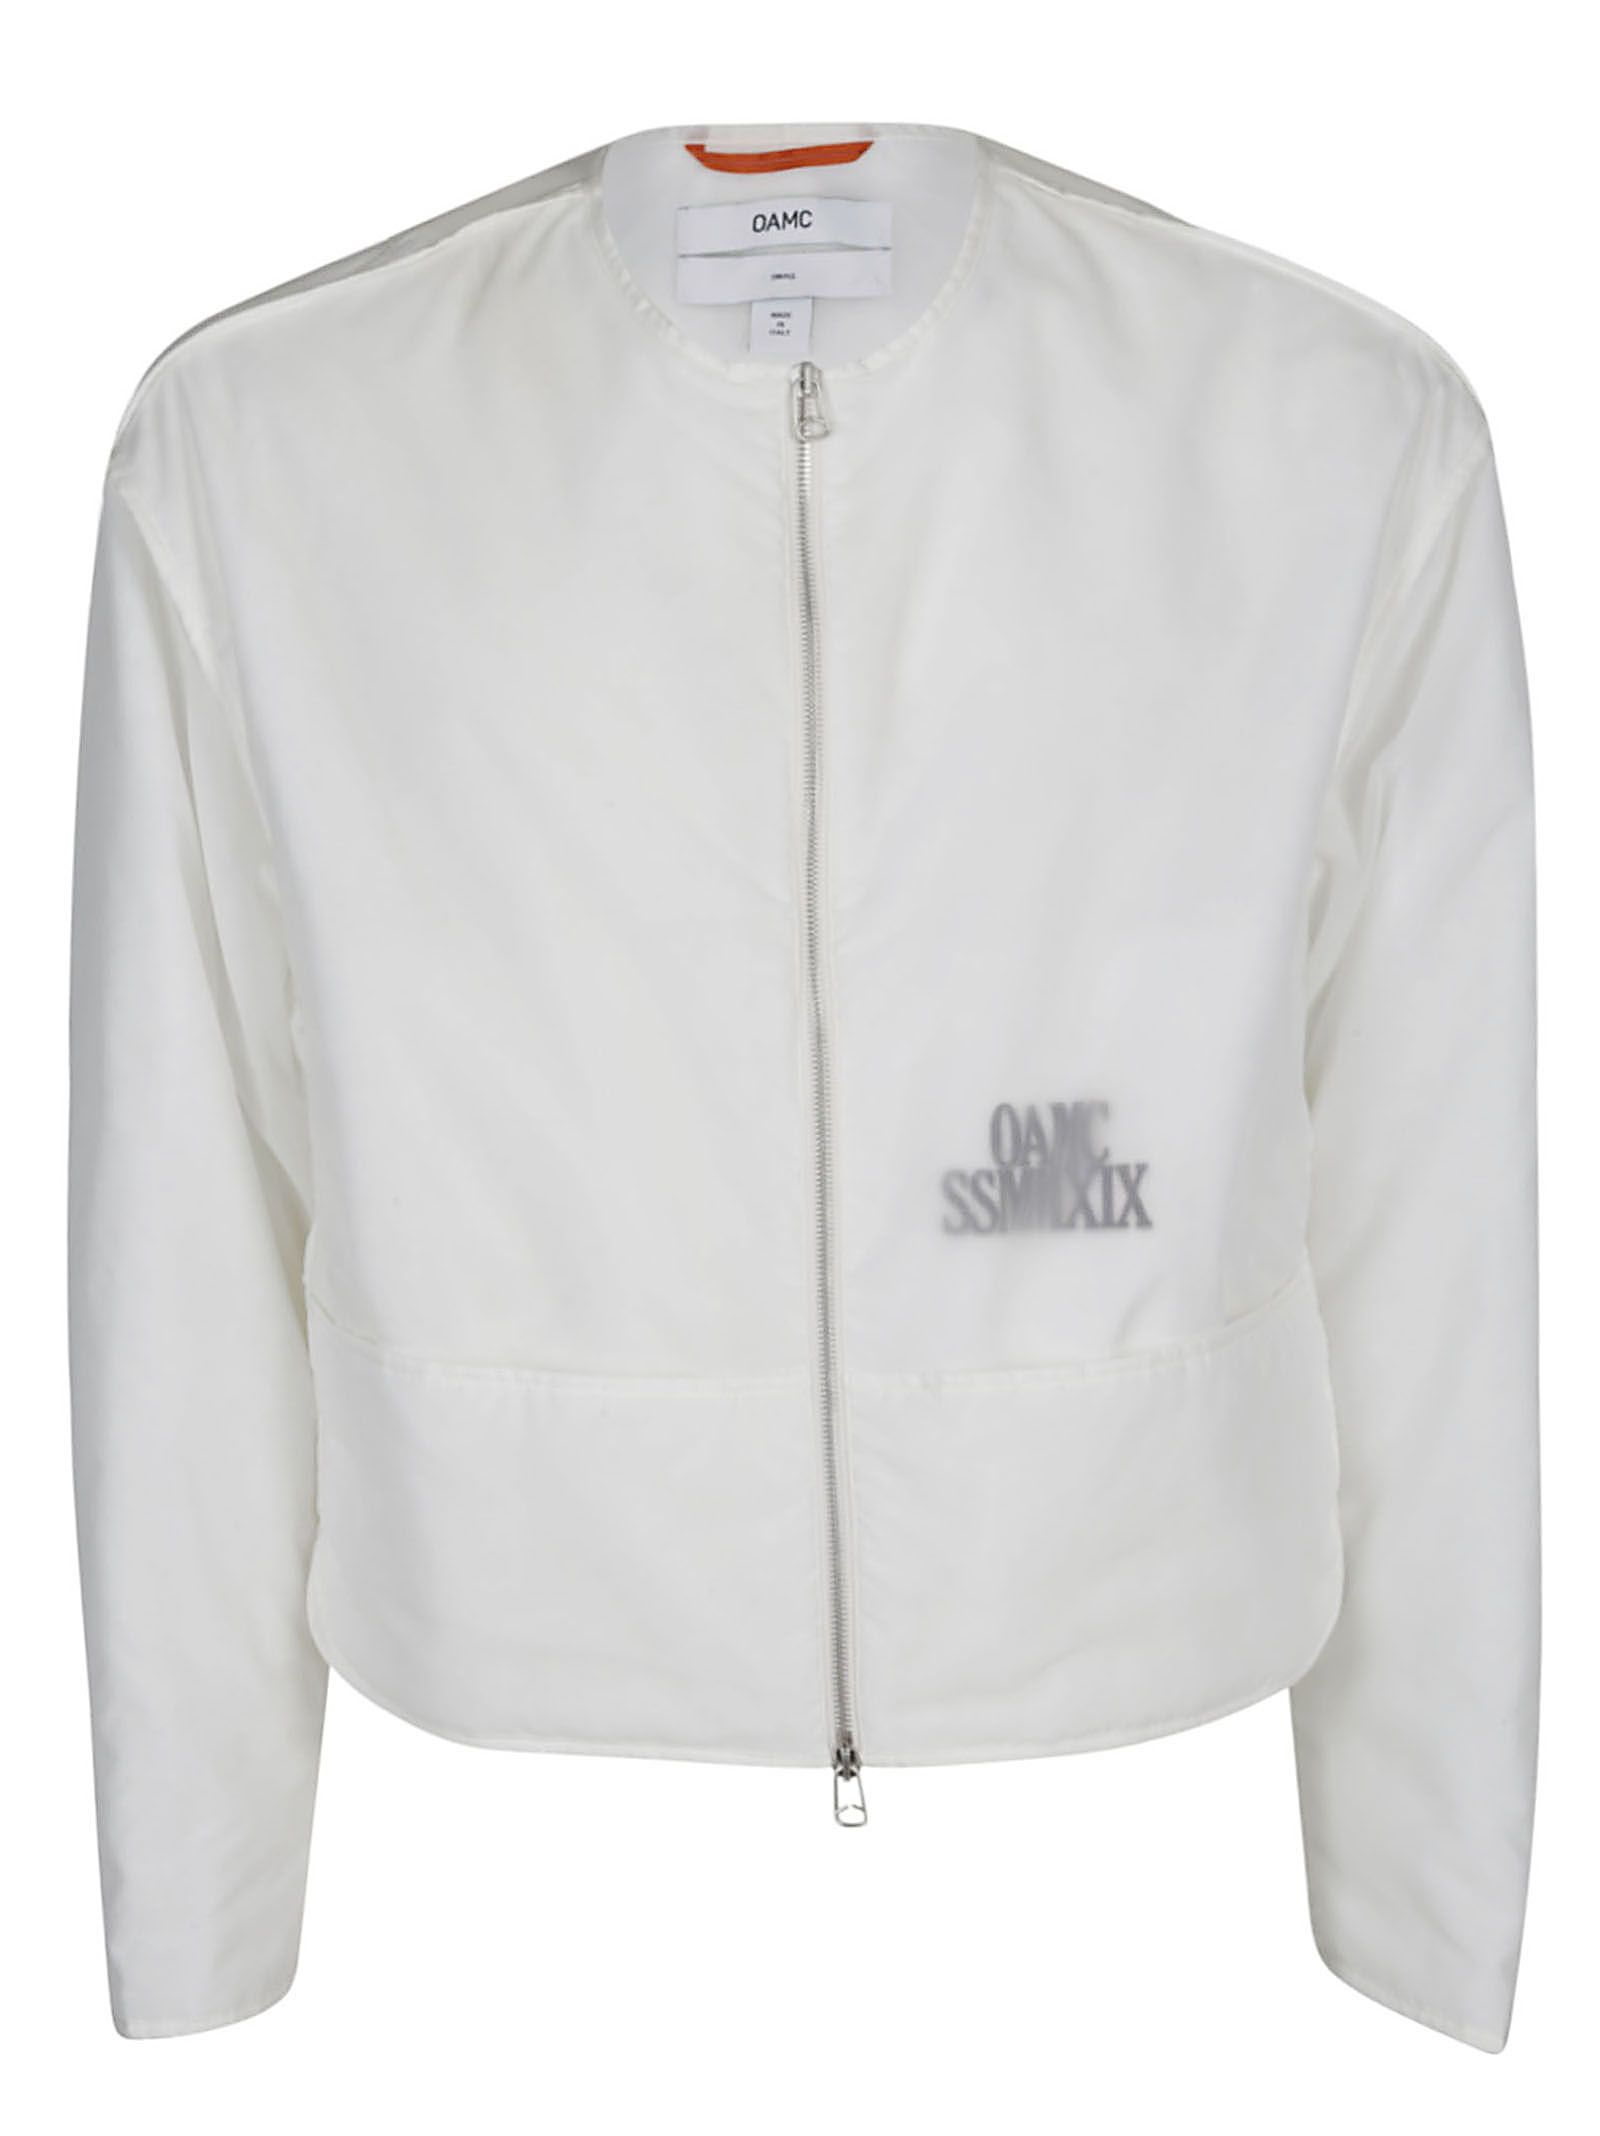 Oamc Slim Fit Jacket In White | ModeSens | Slim fit jackets